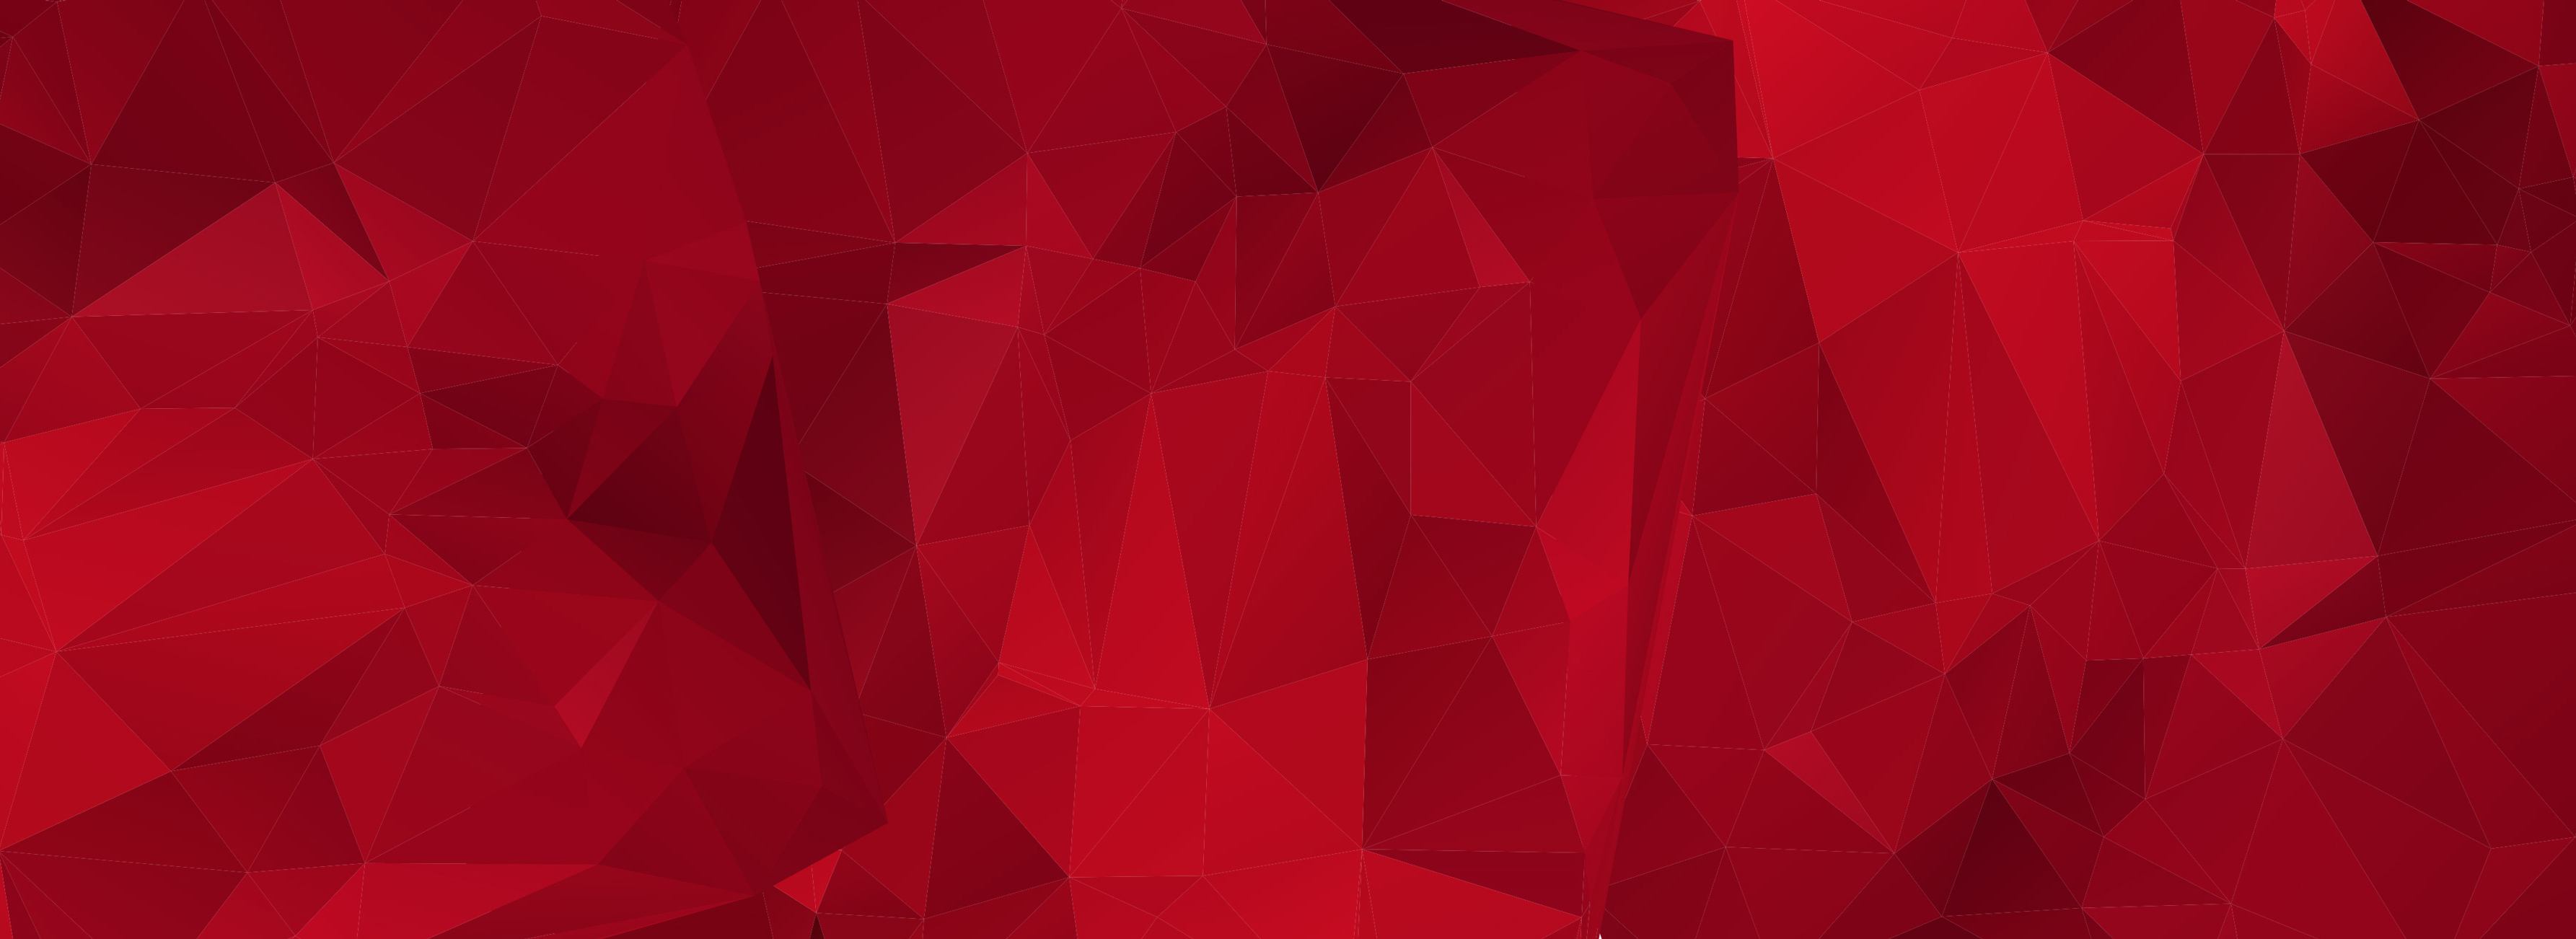 red-geometric-background